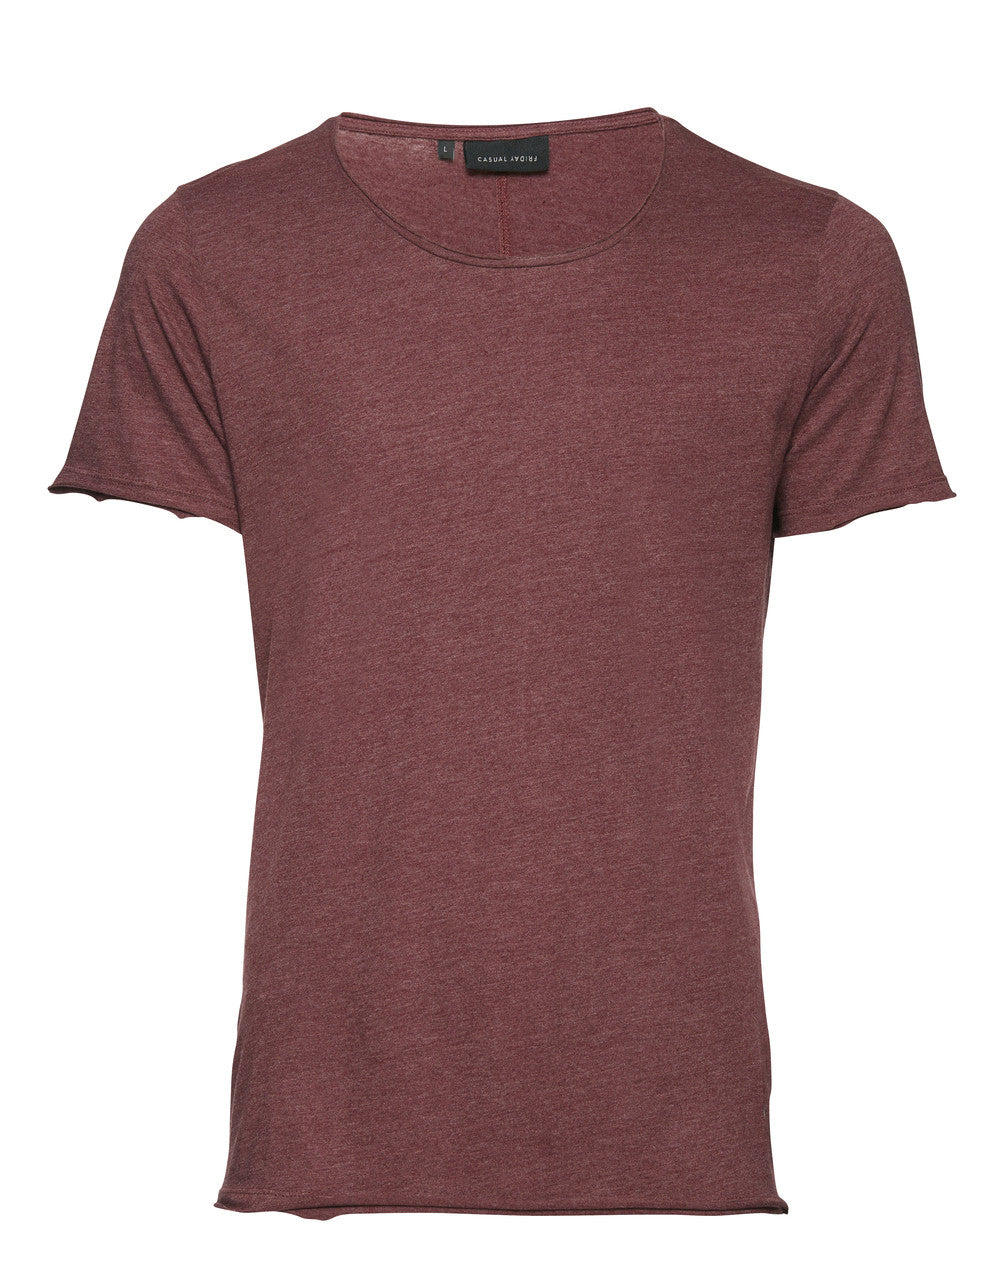 CASUAL FRIDAY - Short Sleeved WineRed